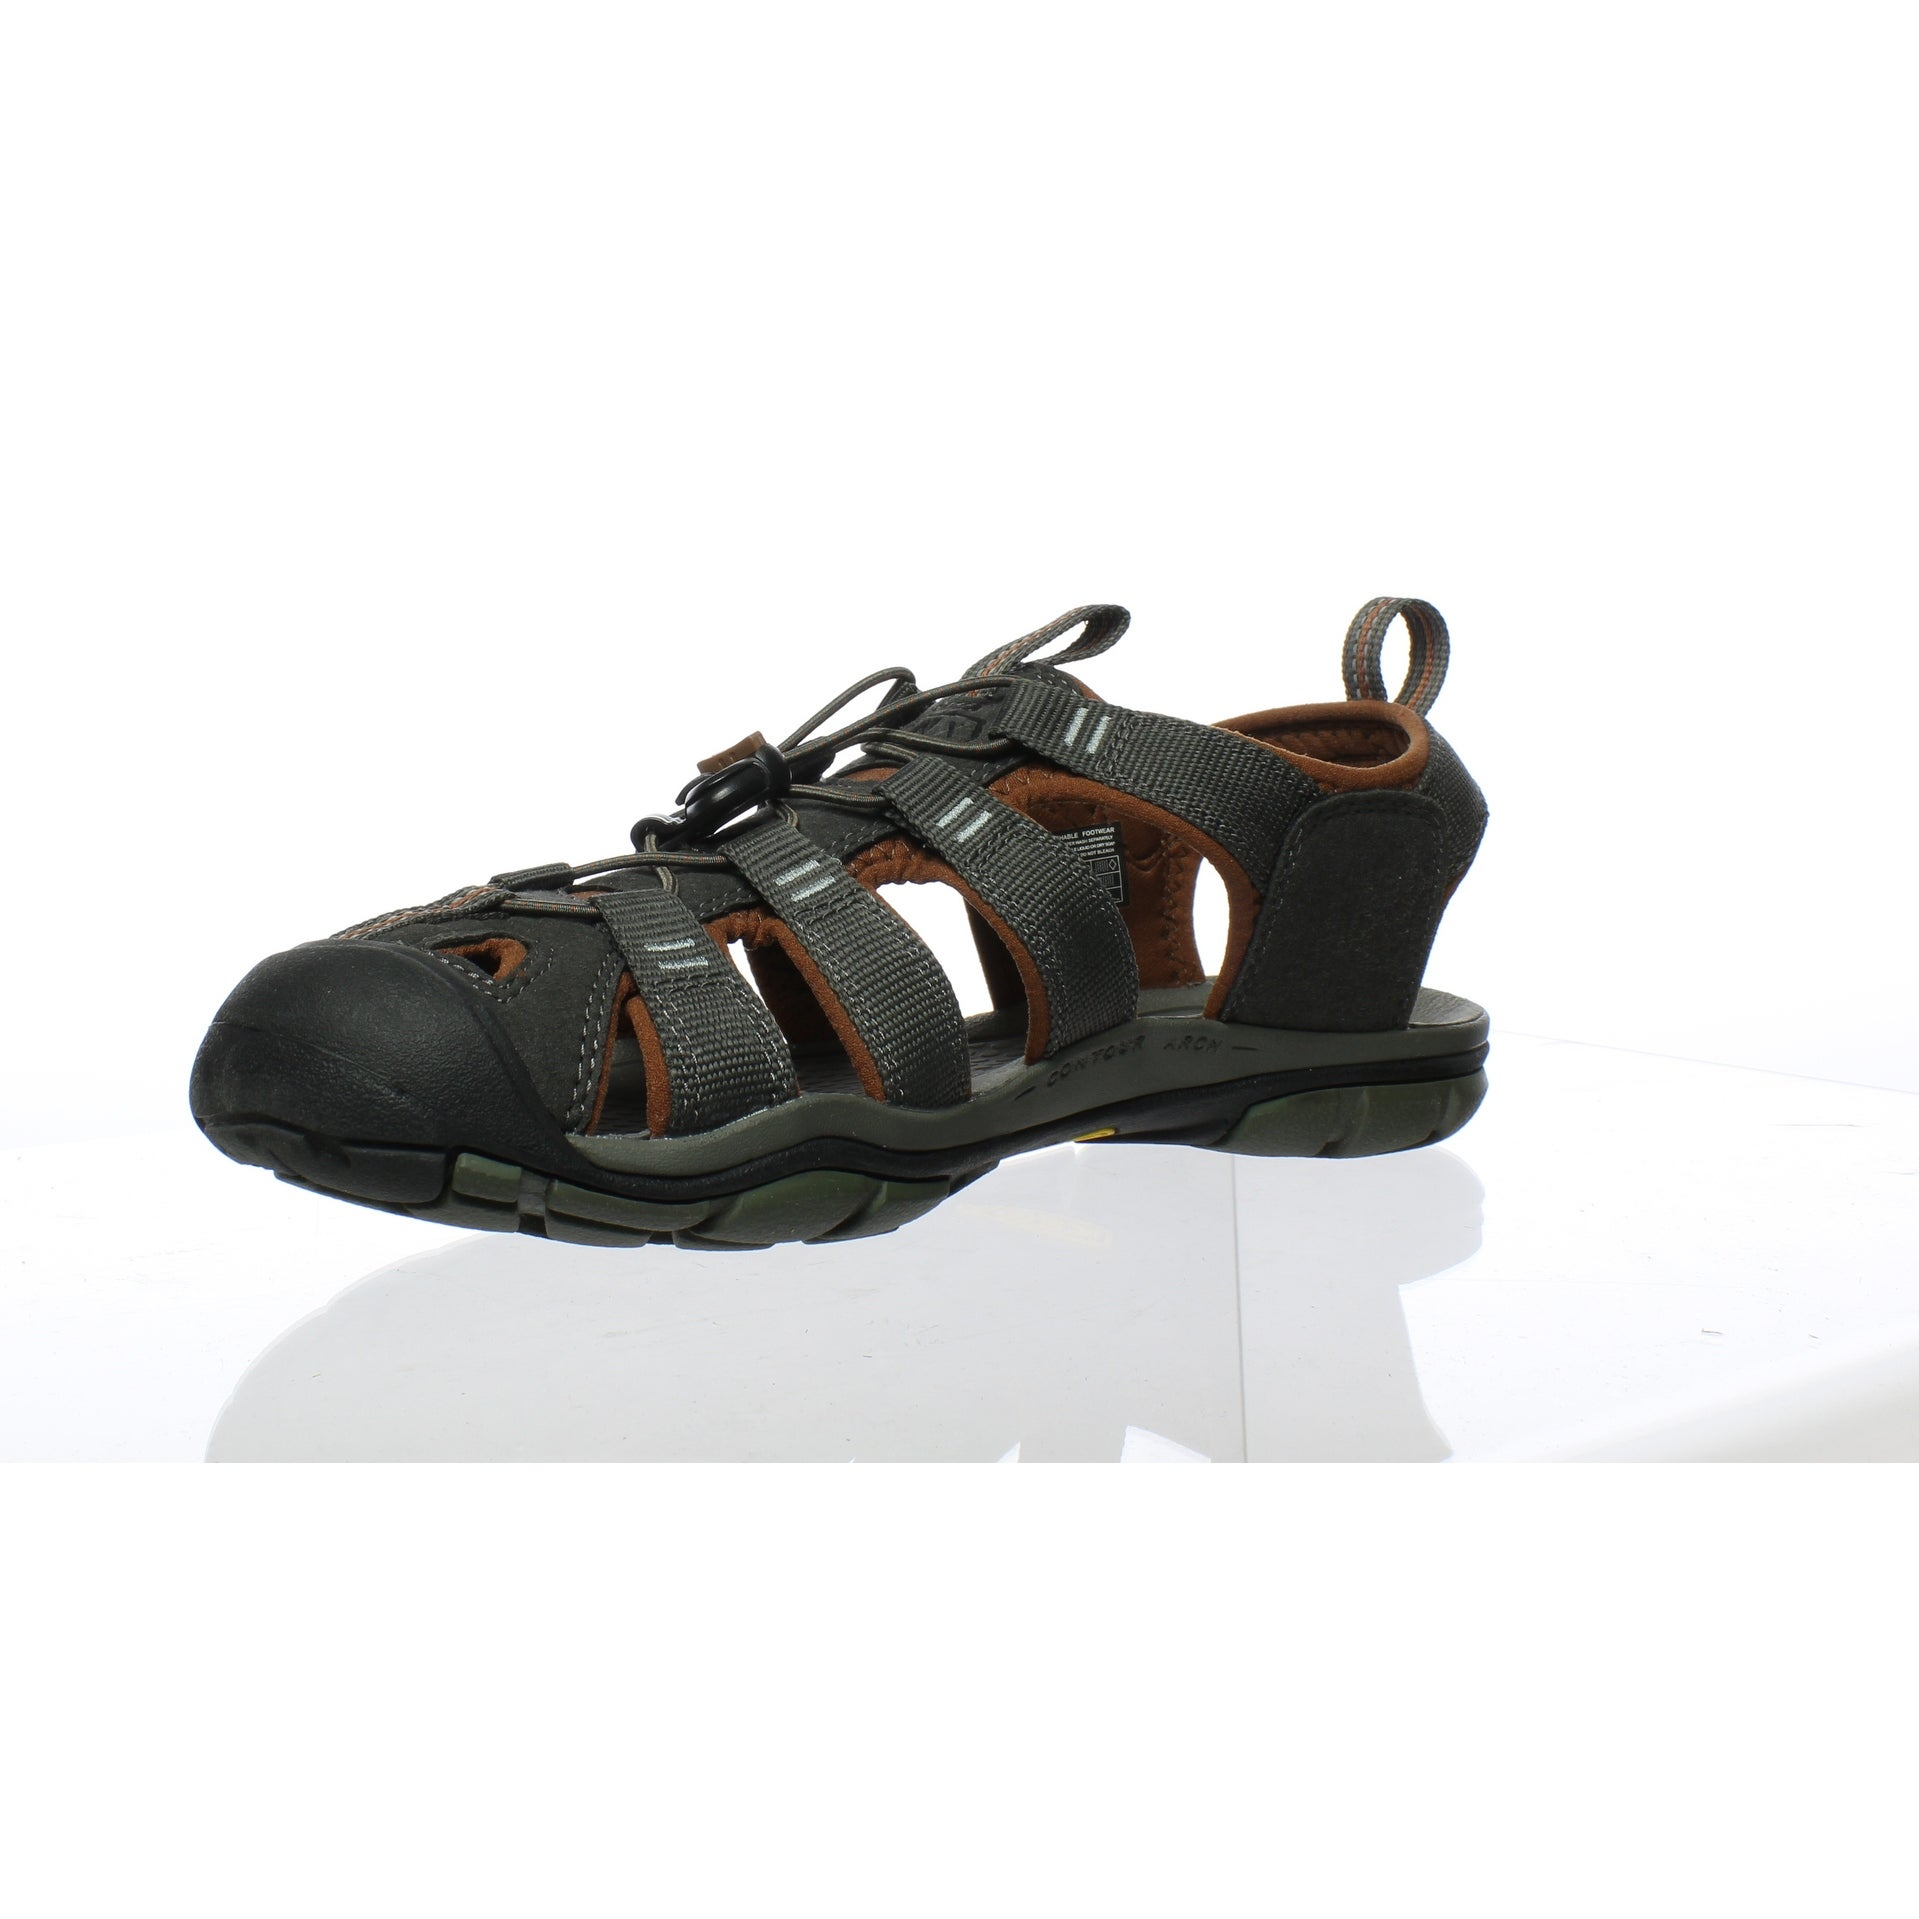 ab30621272f0 Shop KEEN Womens 1014456 Brown Sport Sandals Size 9 - Free Shipping Today -  Overstock - 25367003